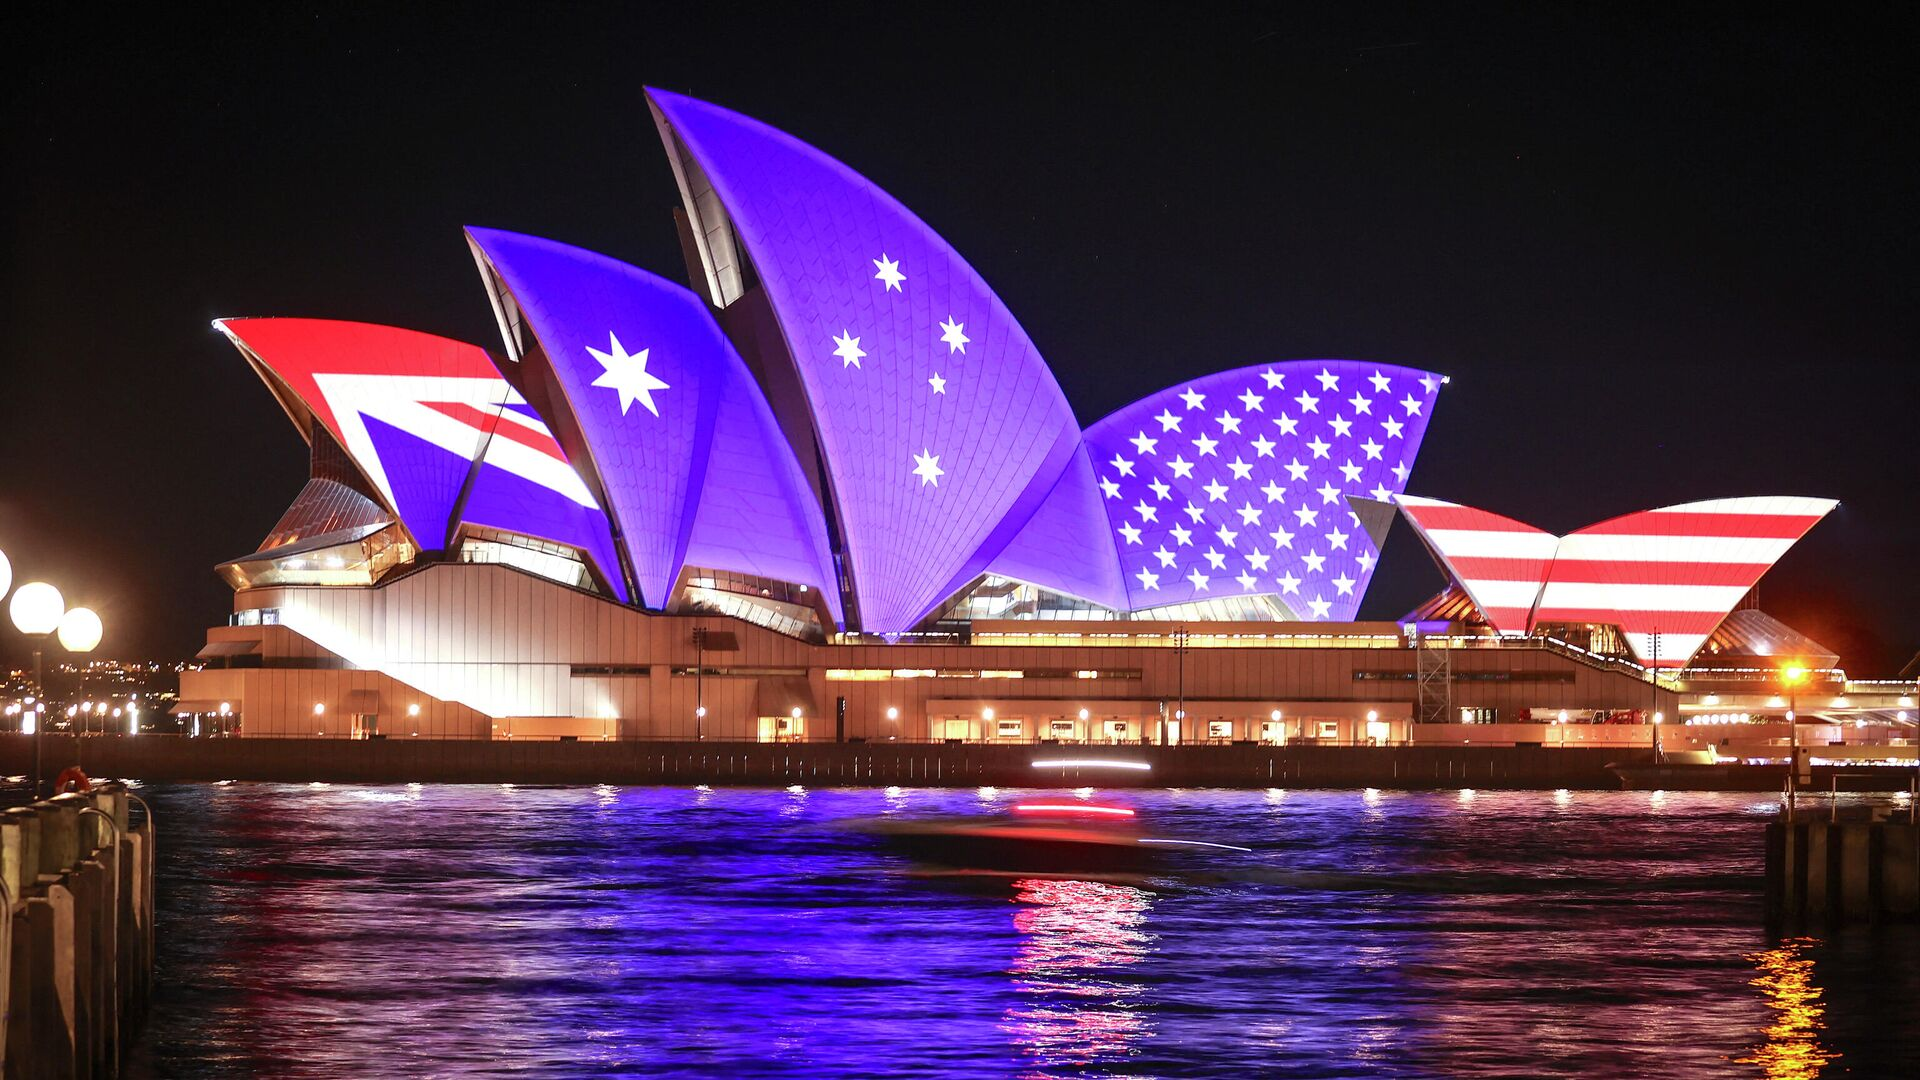 The flags of the US and Australia are projected onto the sails of the Opera House to commemorate the 70th anniversary of the alliance between Australia, New Zealand and the US known as the ANZUS Treaty in Sydney on September 1, 2021 - Sputnik International, 1920, 16.09.2021